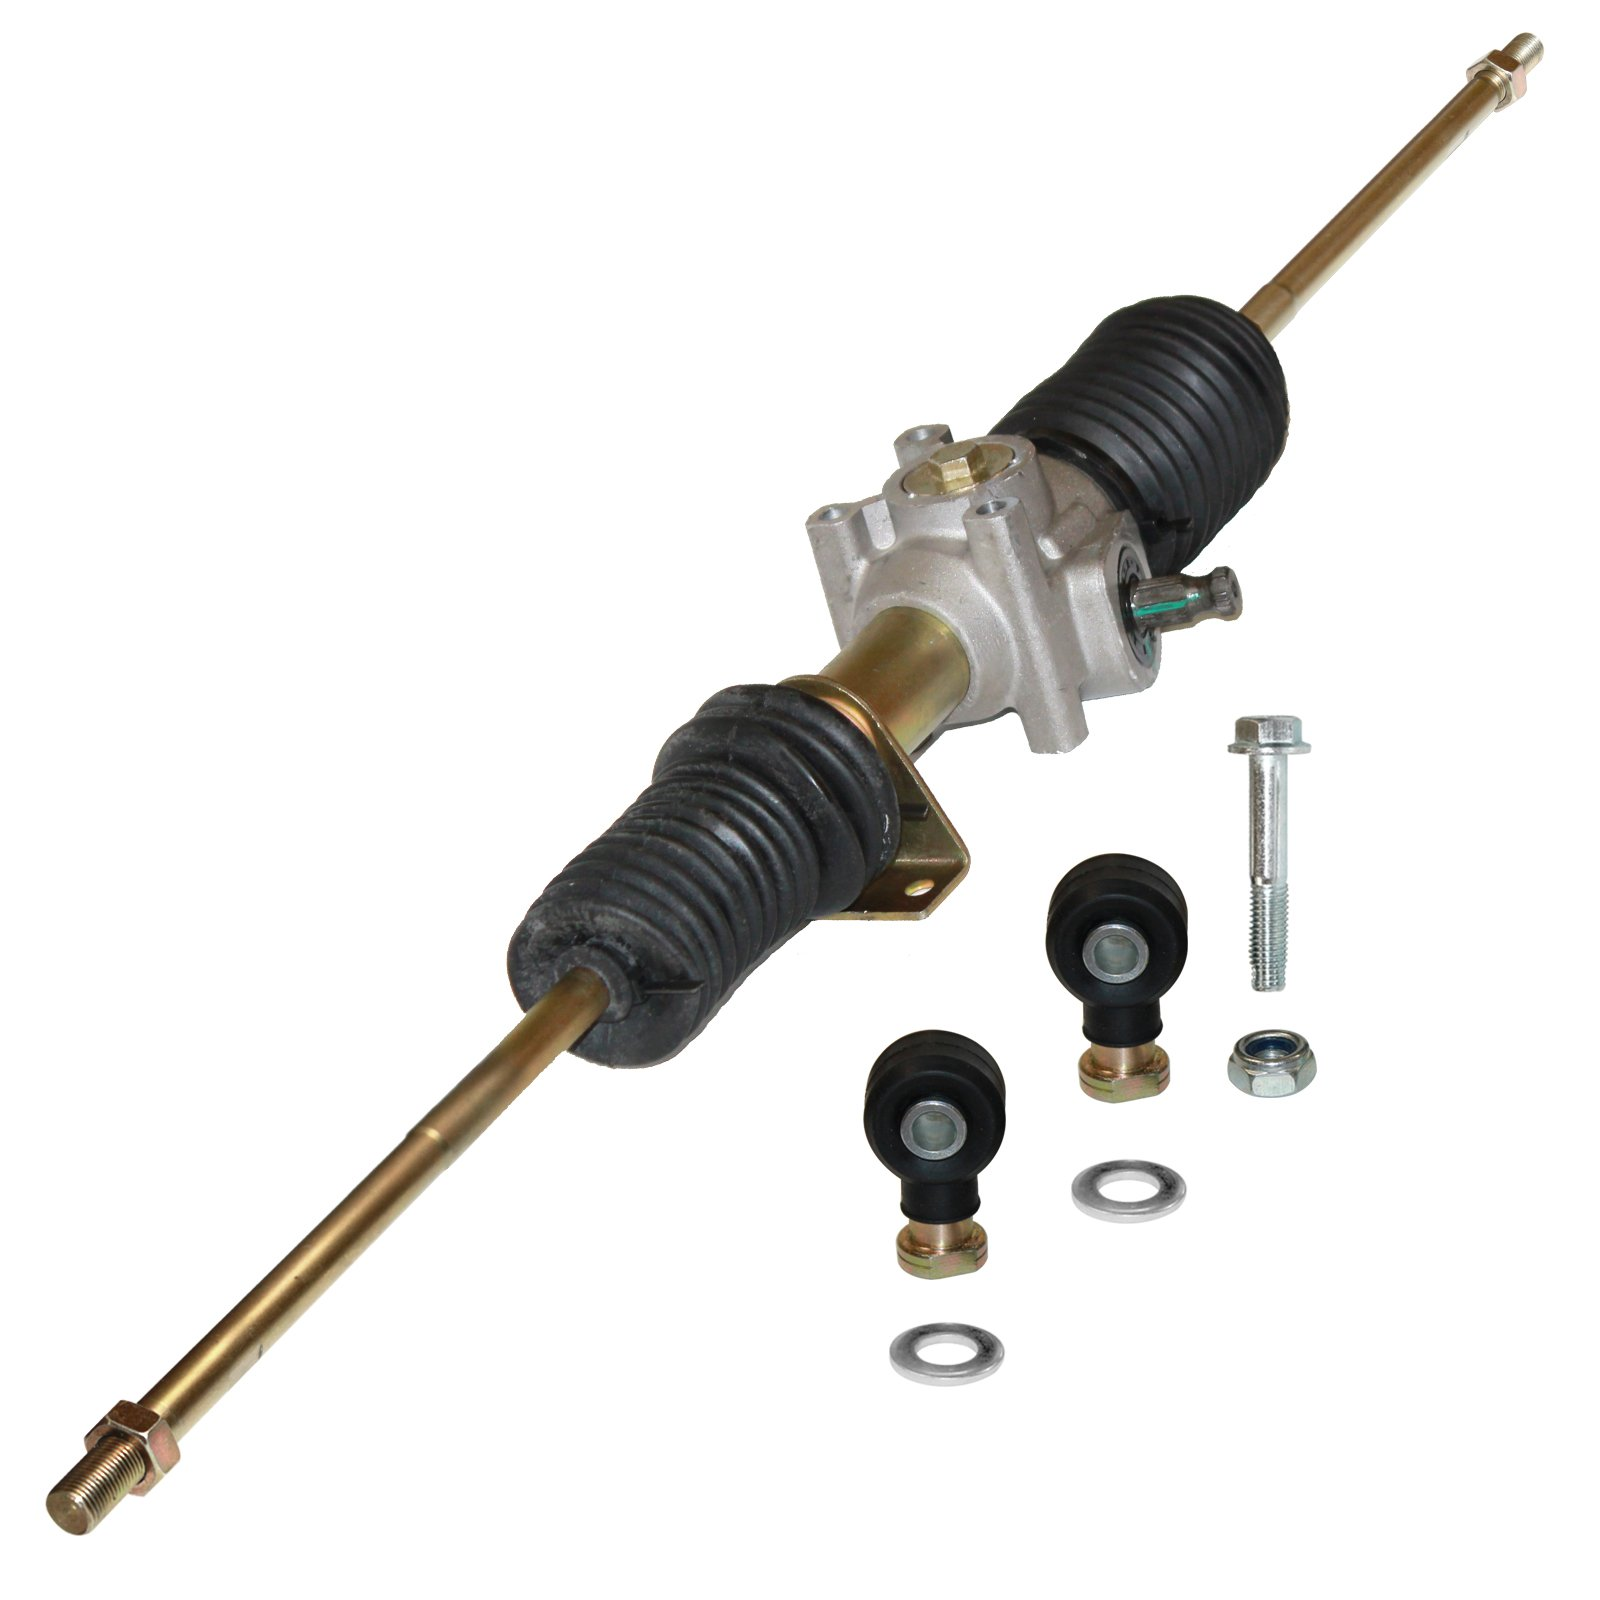 CALTRIC RACK and PINION w/TIE ROD ENDS Fits POLARIS RZR 800 EFI 2008-2014 by Caltric (Image #1)